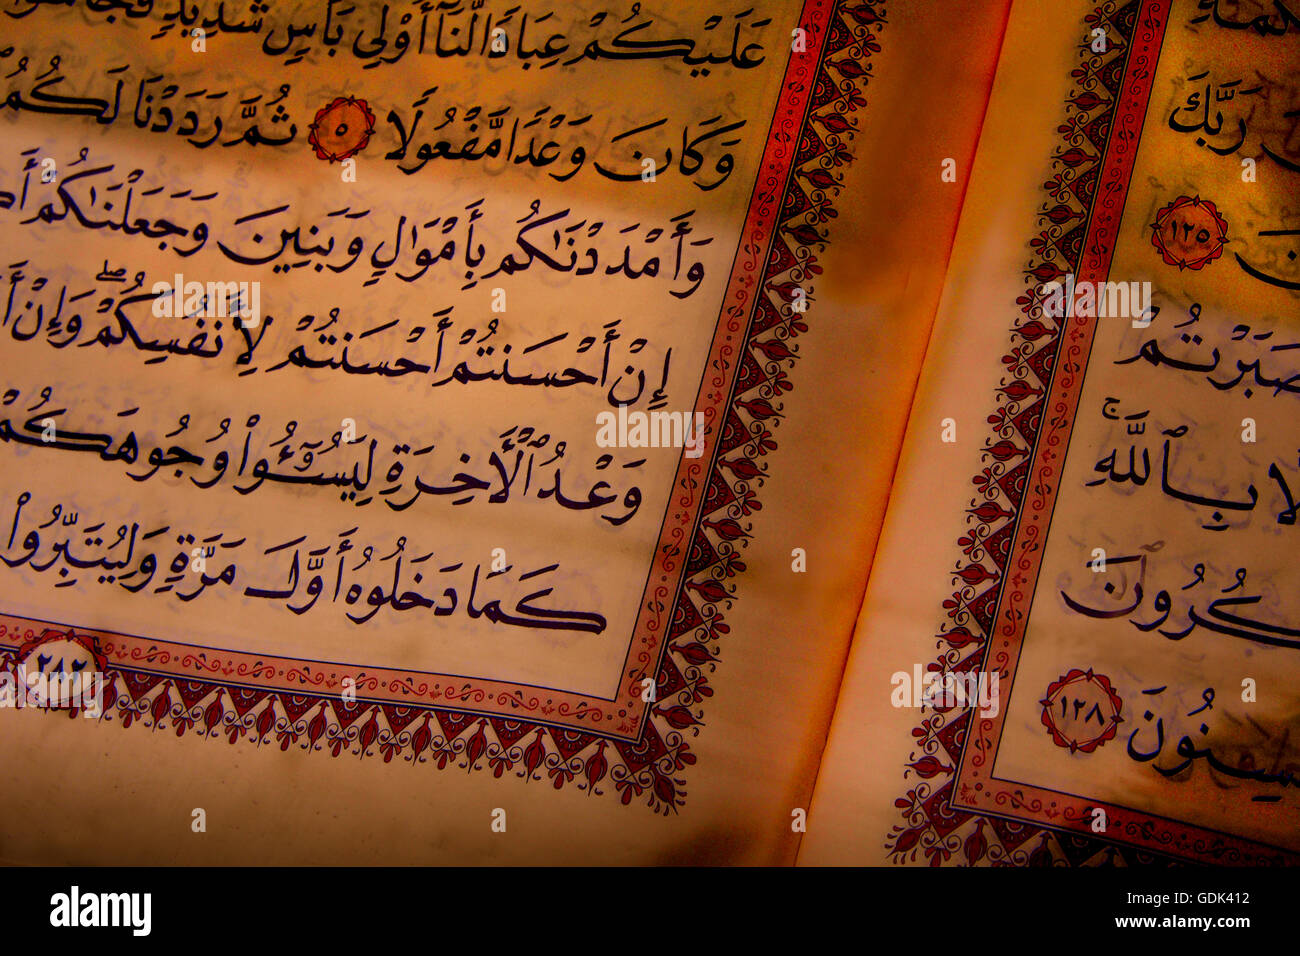 The Quran, literally meaning